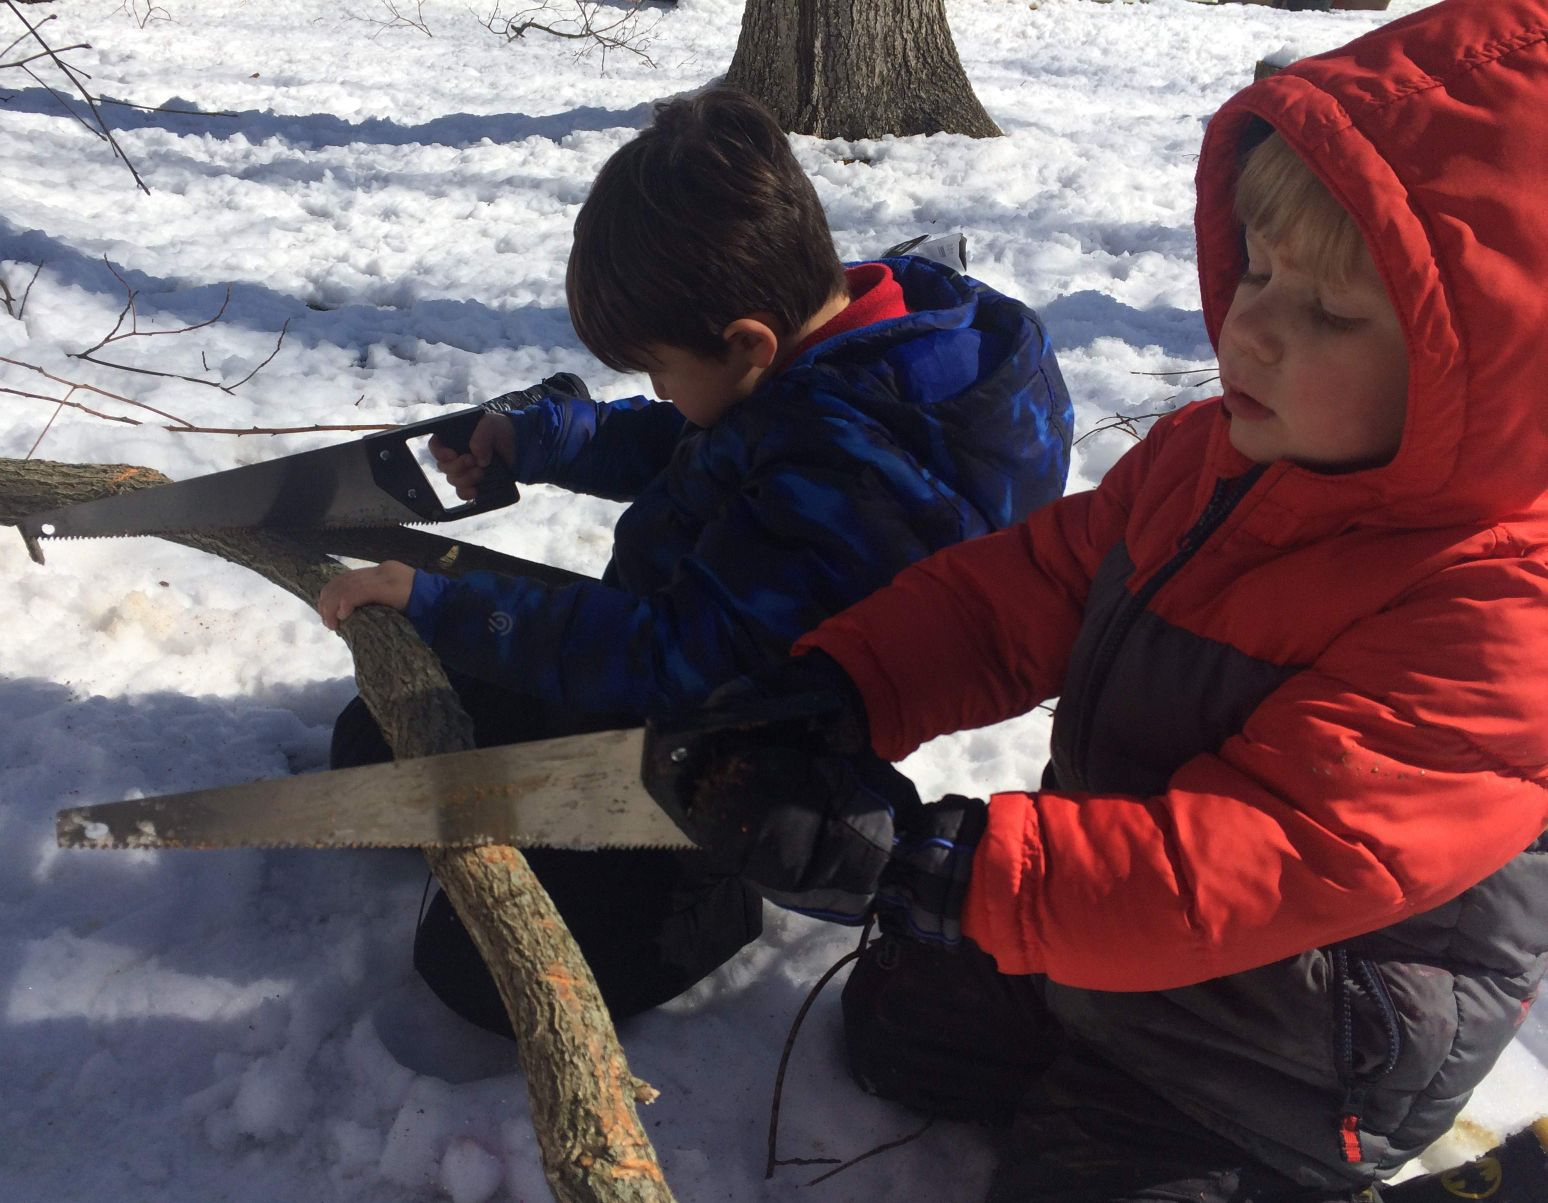 sawing snow branch